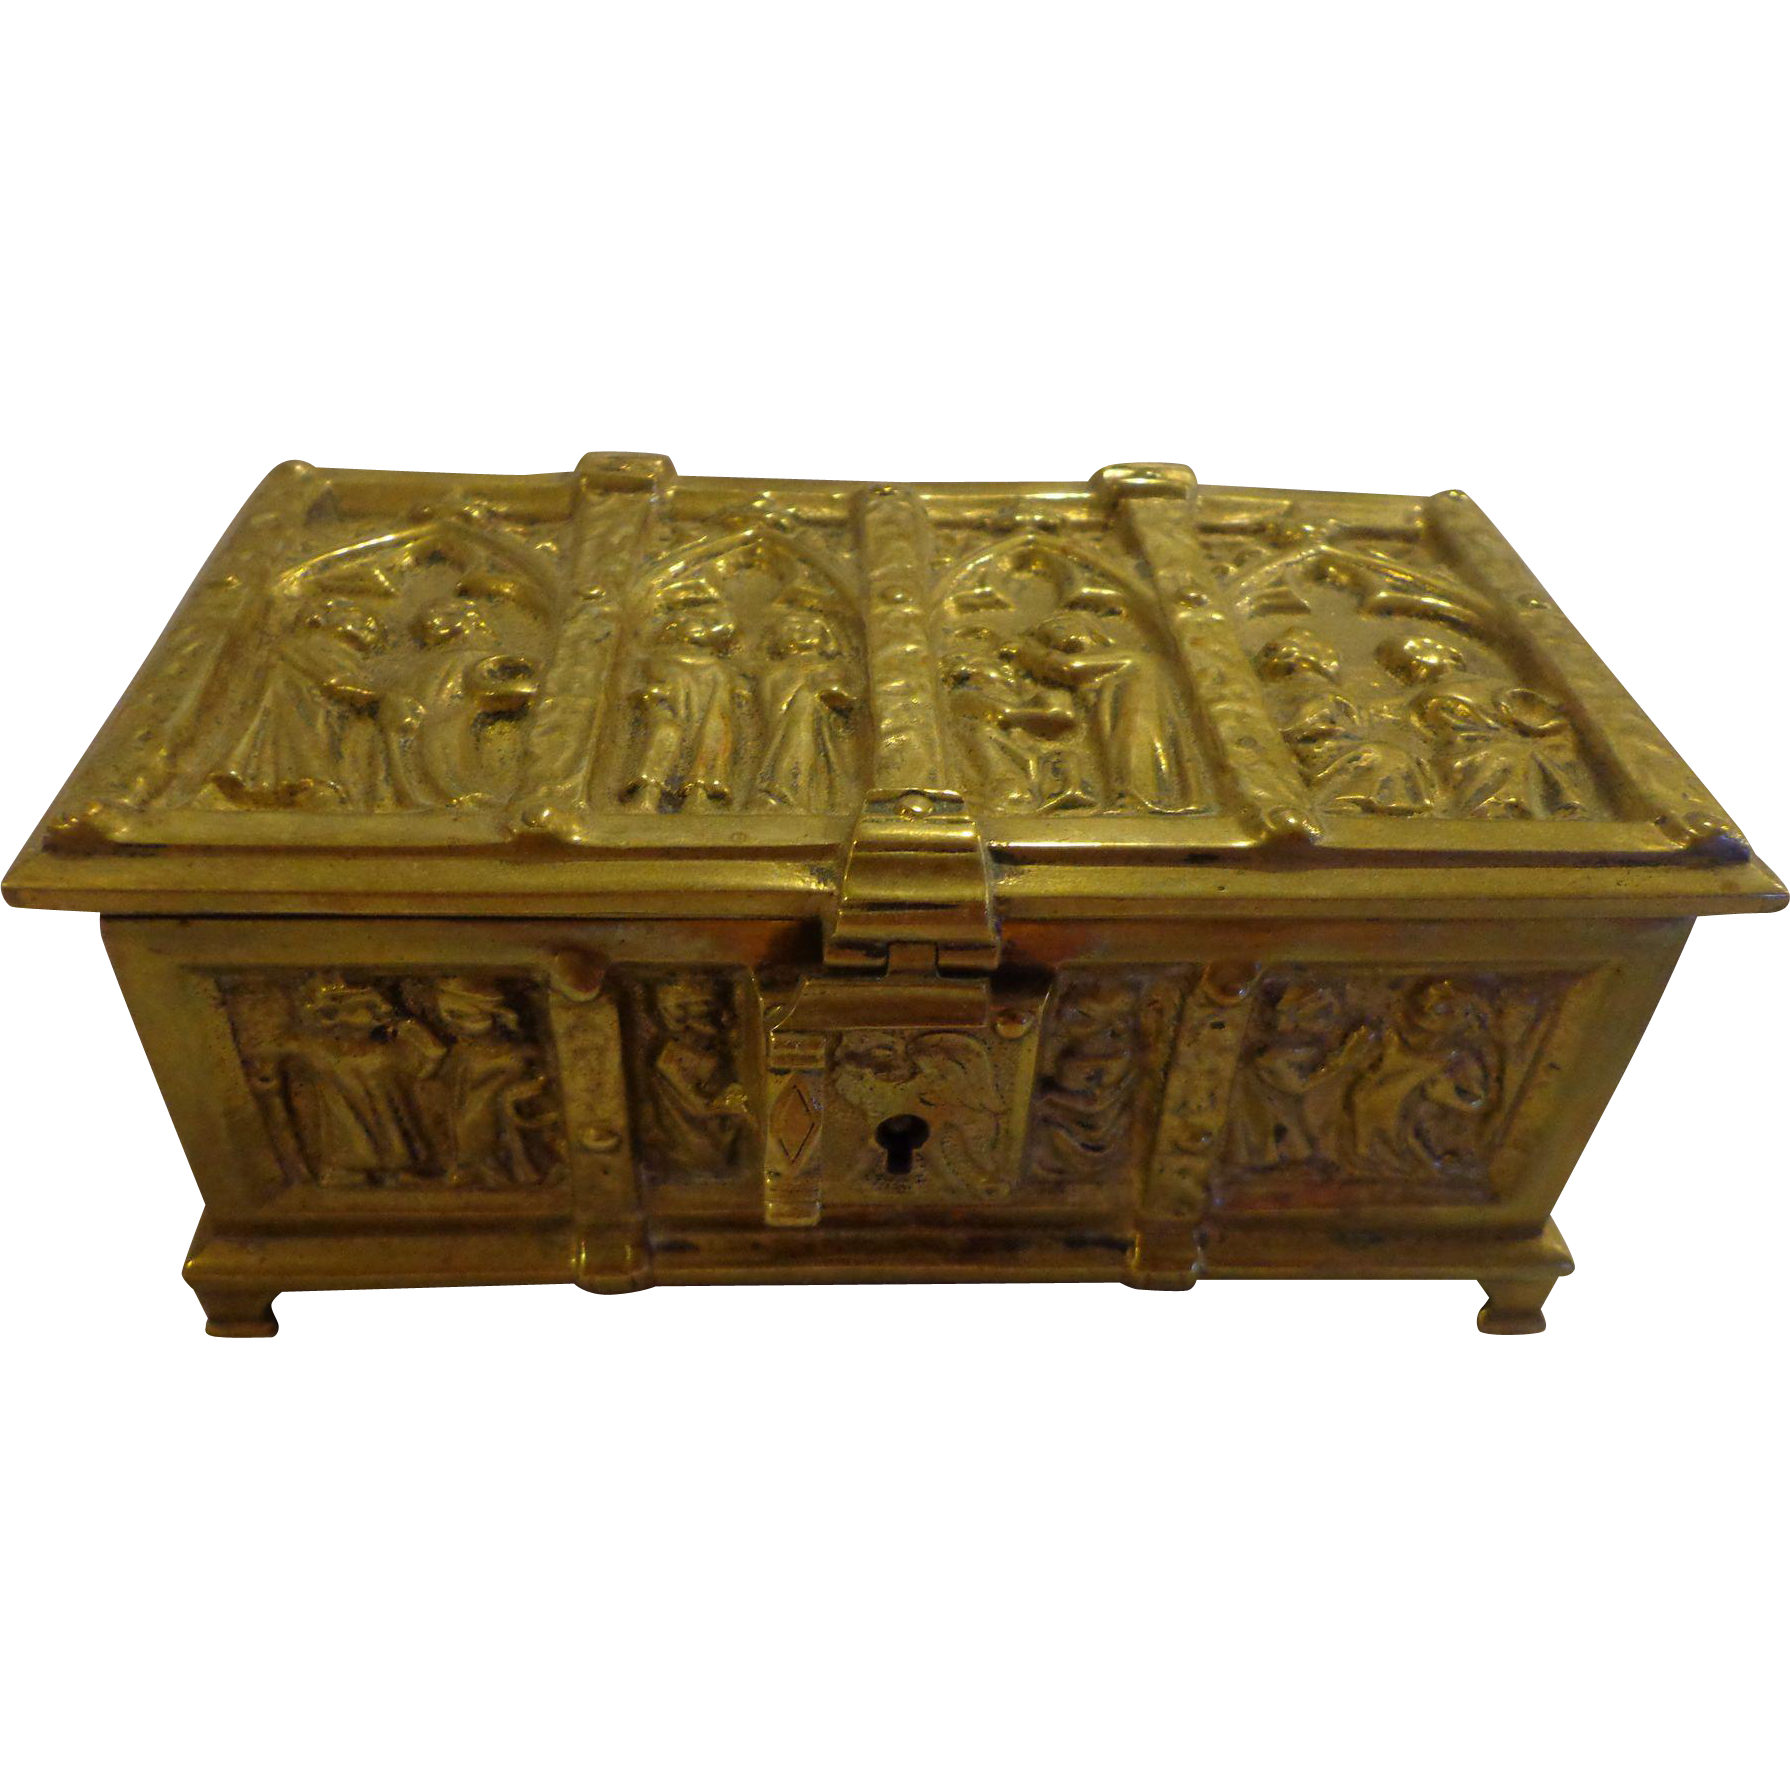 Antique french chasse victorian relic box casket bronze medieval antique french chasse victorian relic box casket bronze medieval motif reliquary religious geotapseo Images